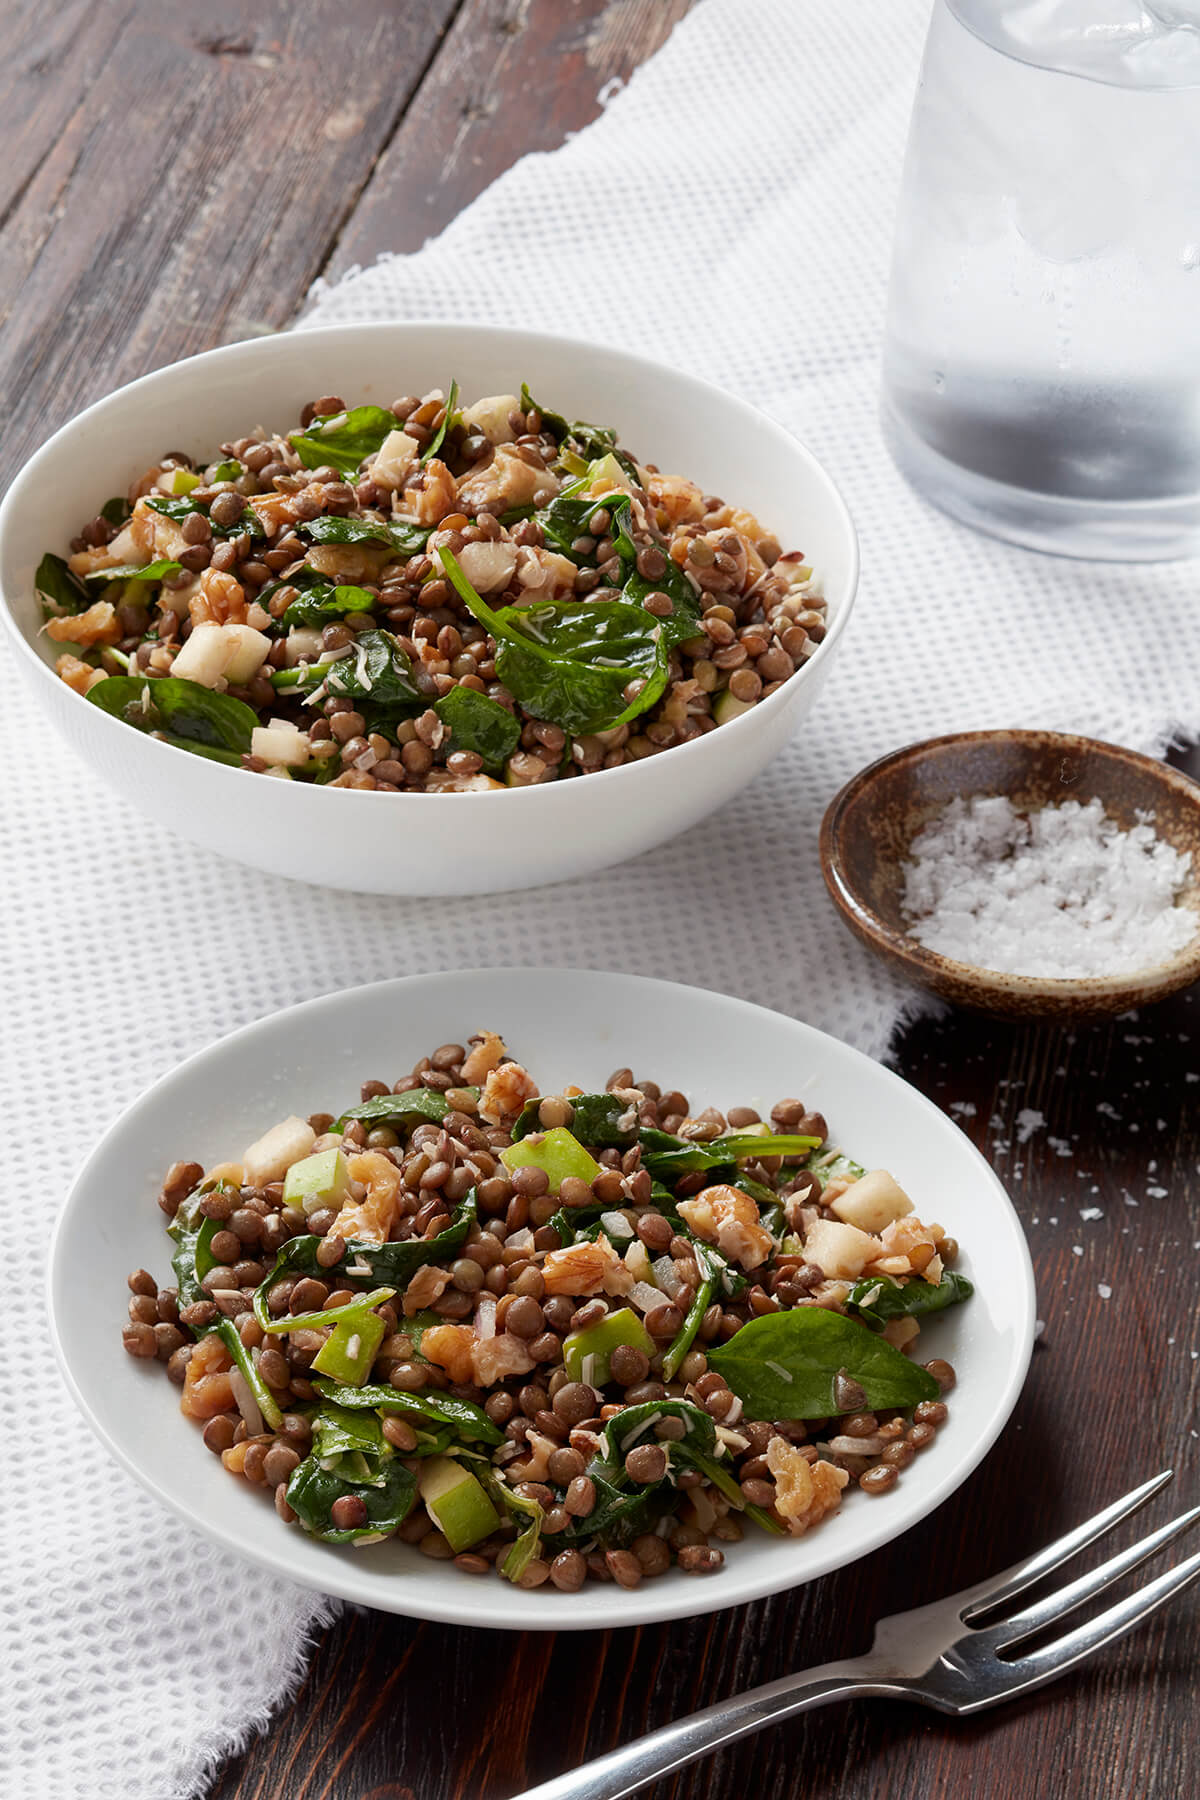 Warm Lentil Salad with Spinach, Walnuts, and Apple